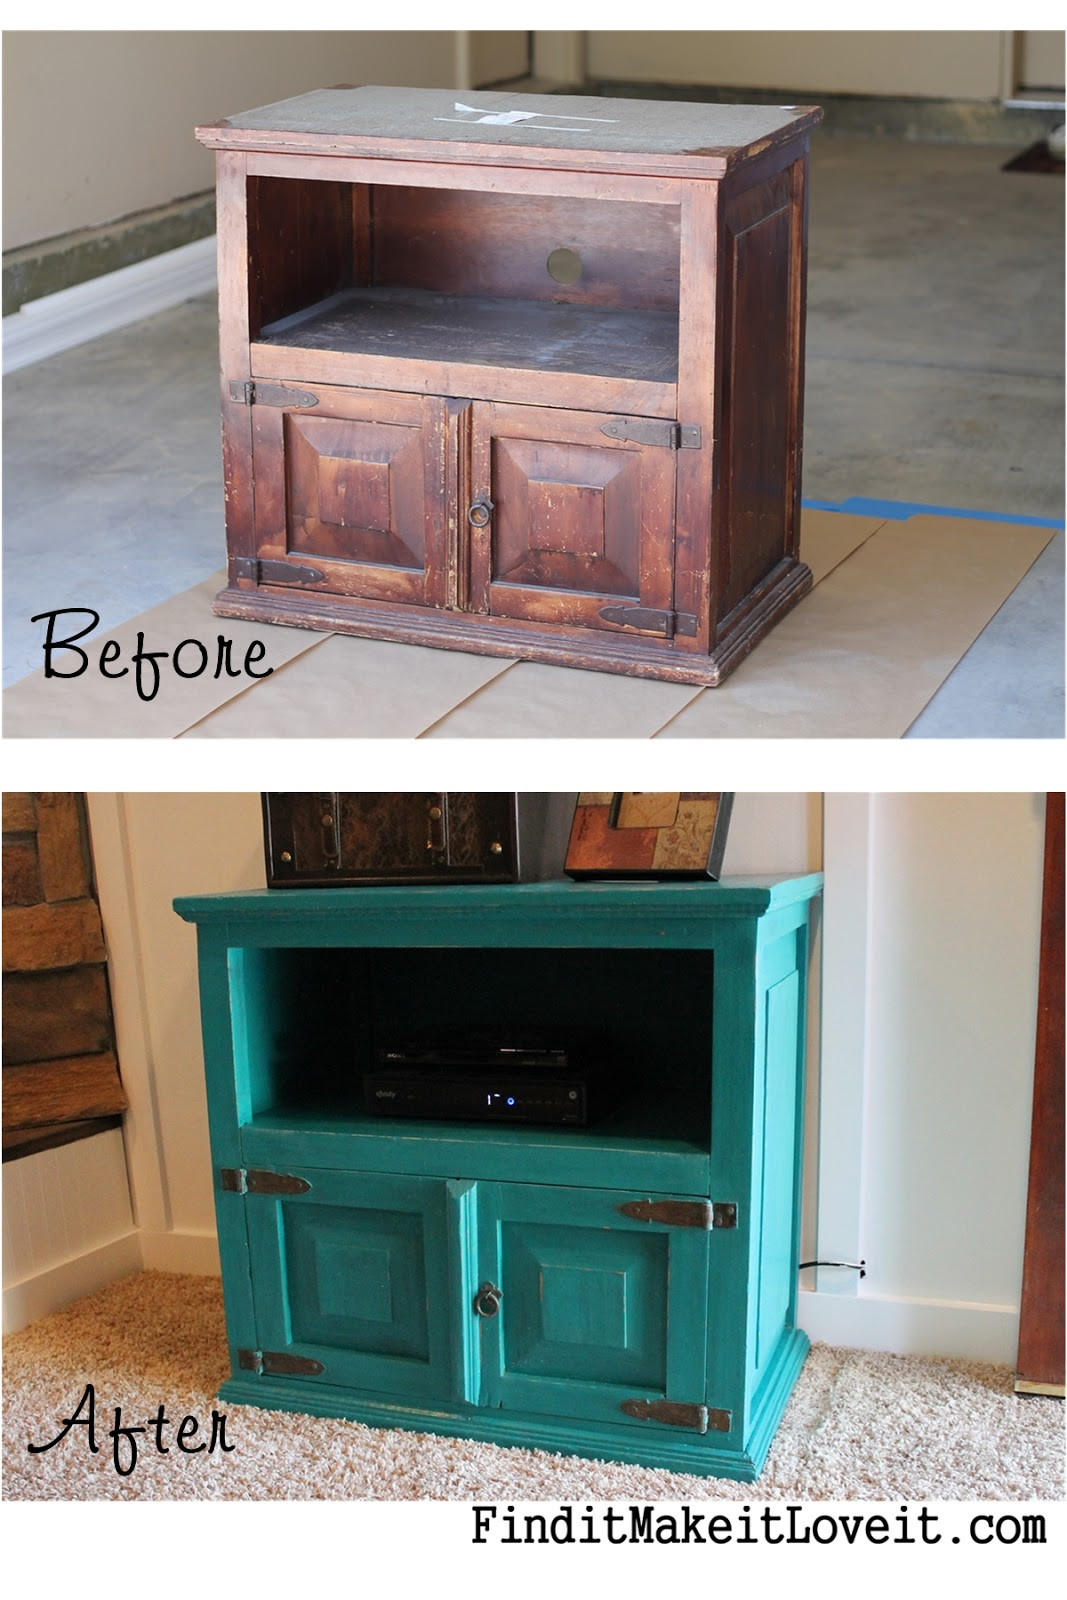 Best ideas about Chalk Paint DIY . Save or Pin DIY Chalk Paint Find it Make it Love it Now.